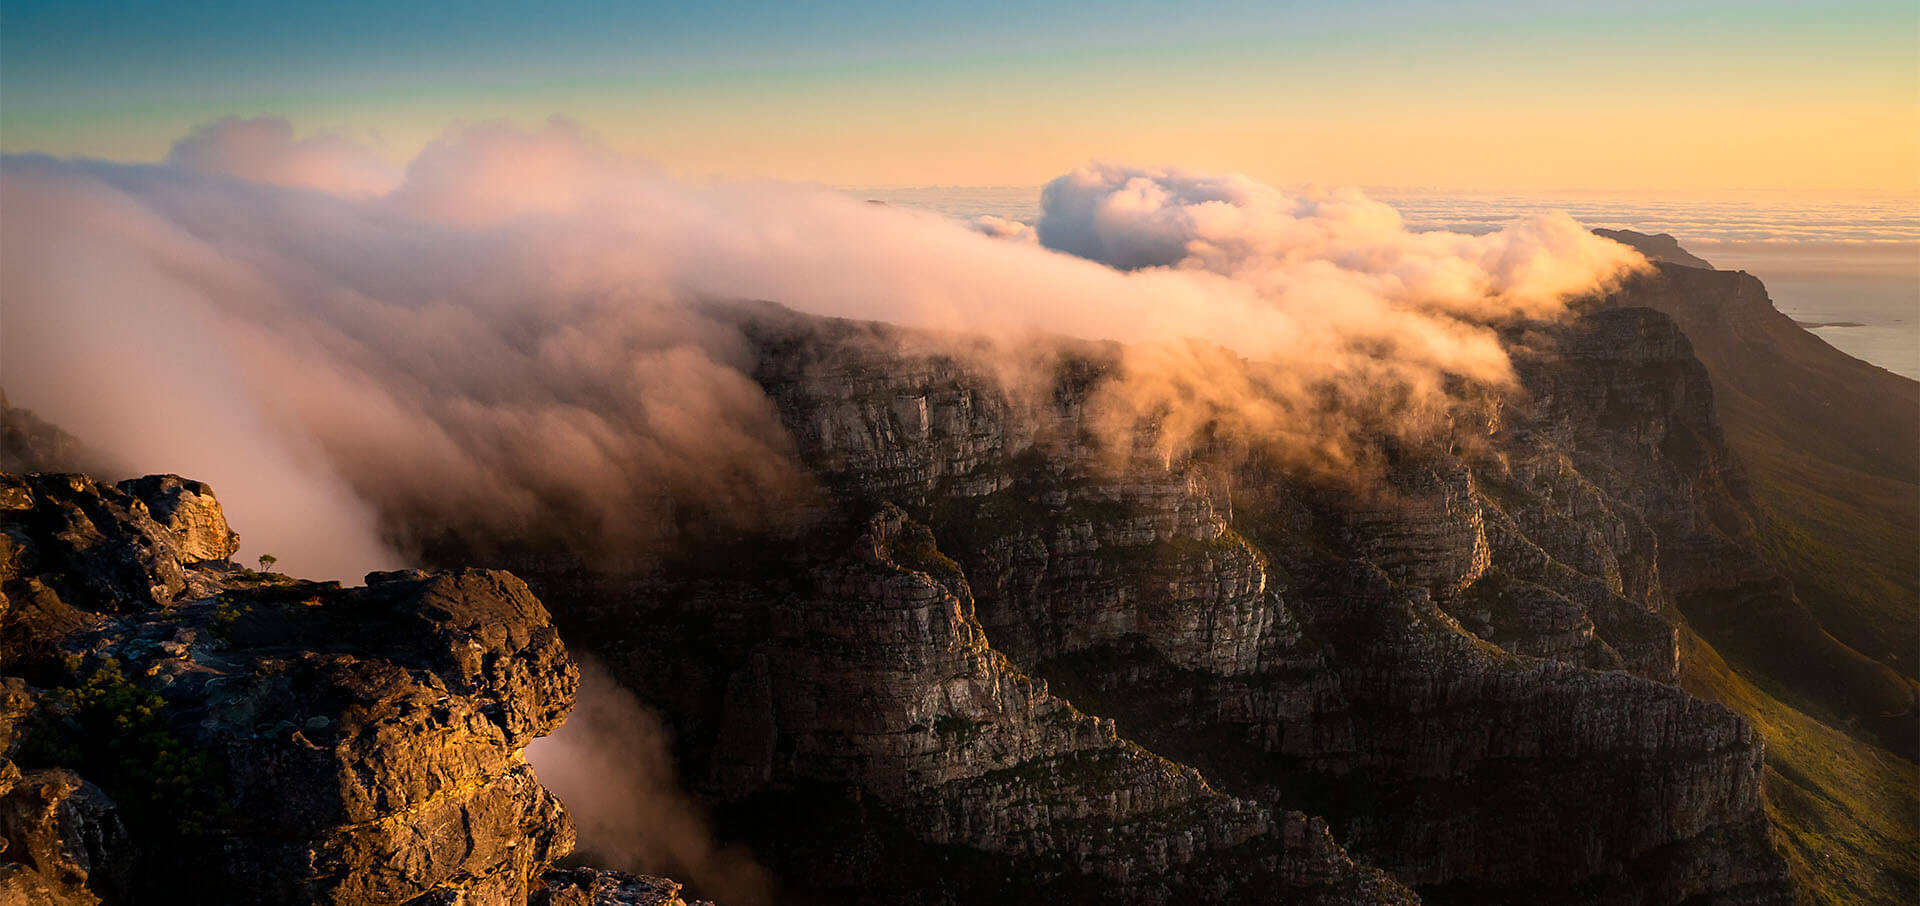 Table mountain with clouds in Cape town, south africa